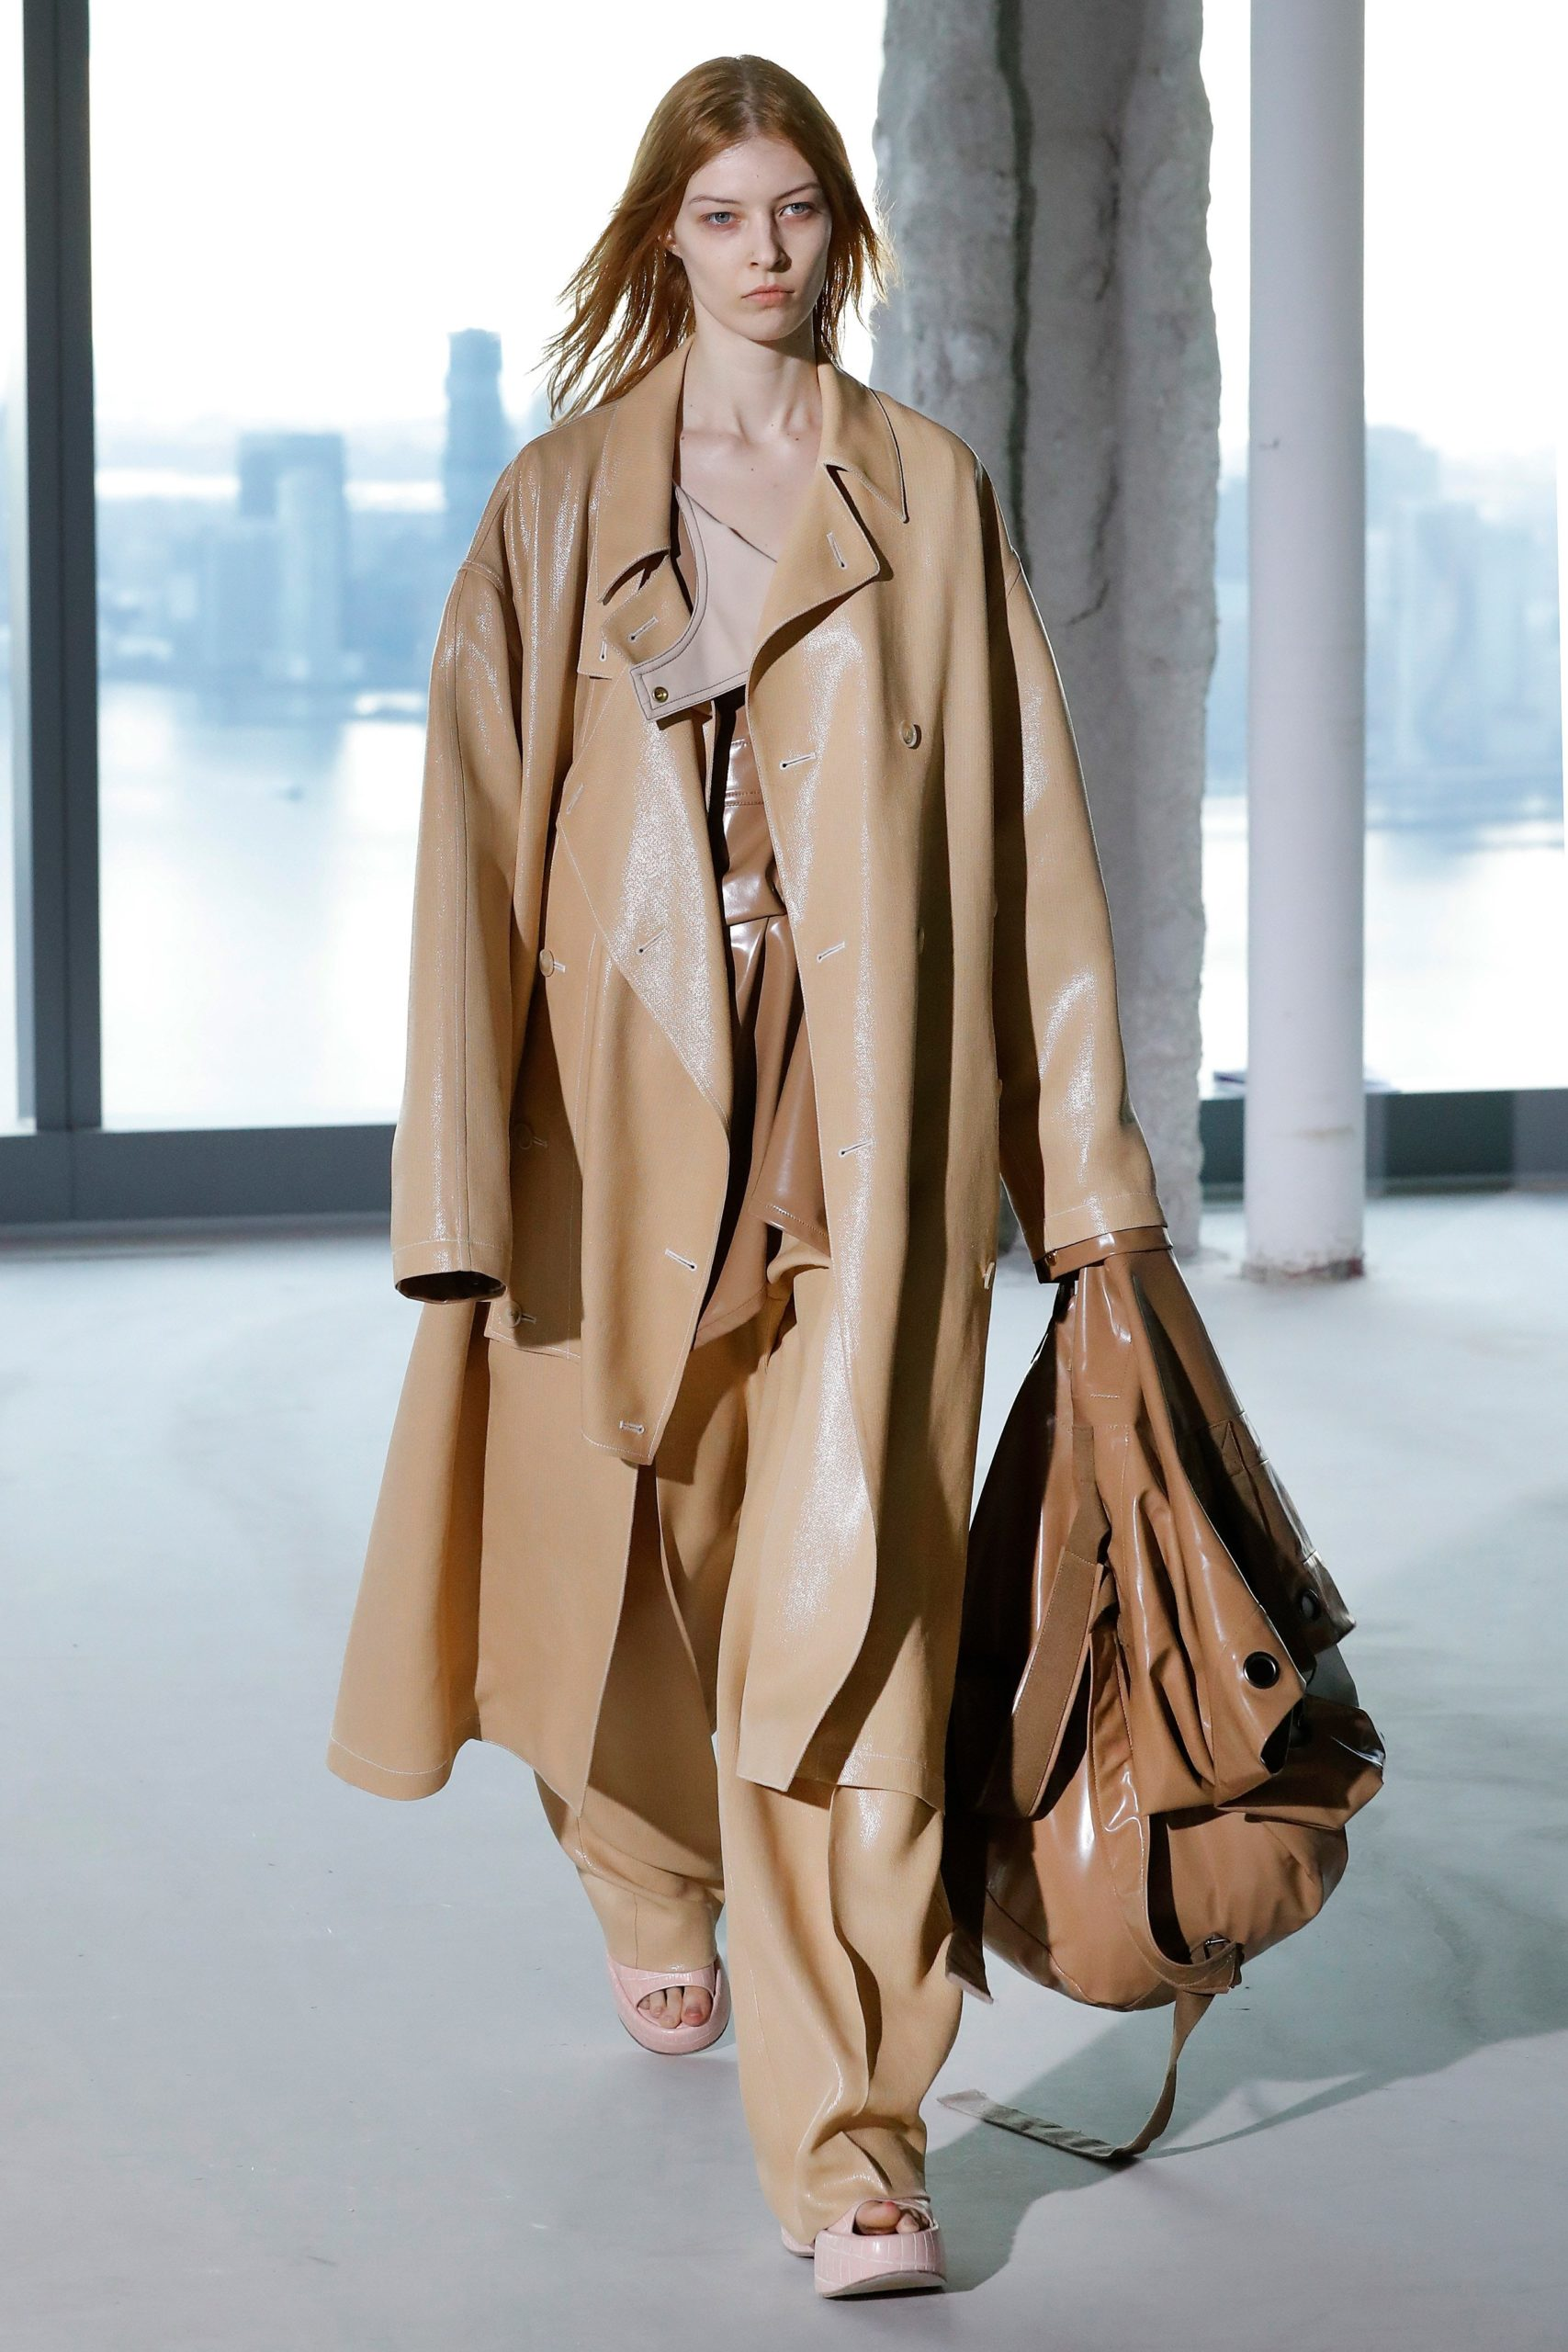 Sies Marjan Fall 2020 trends runway coverage Ready To Wear Vogue beige monochrome